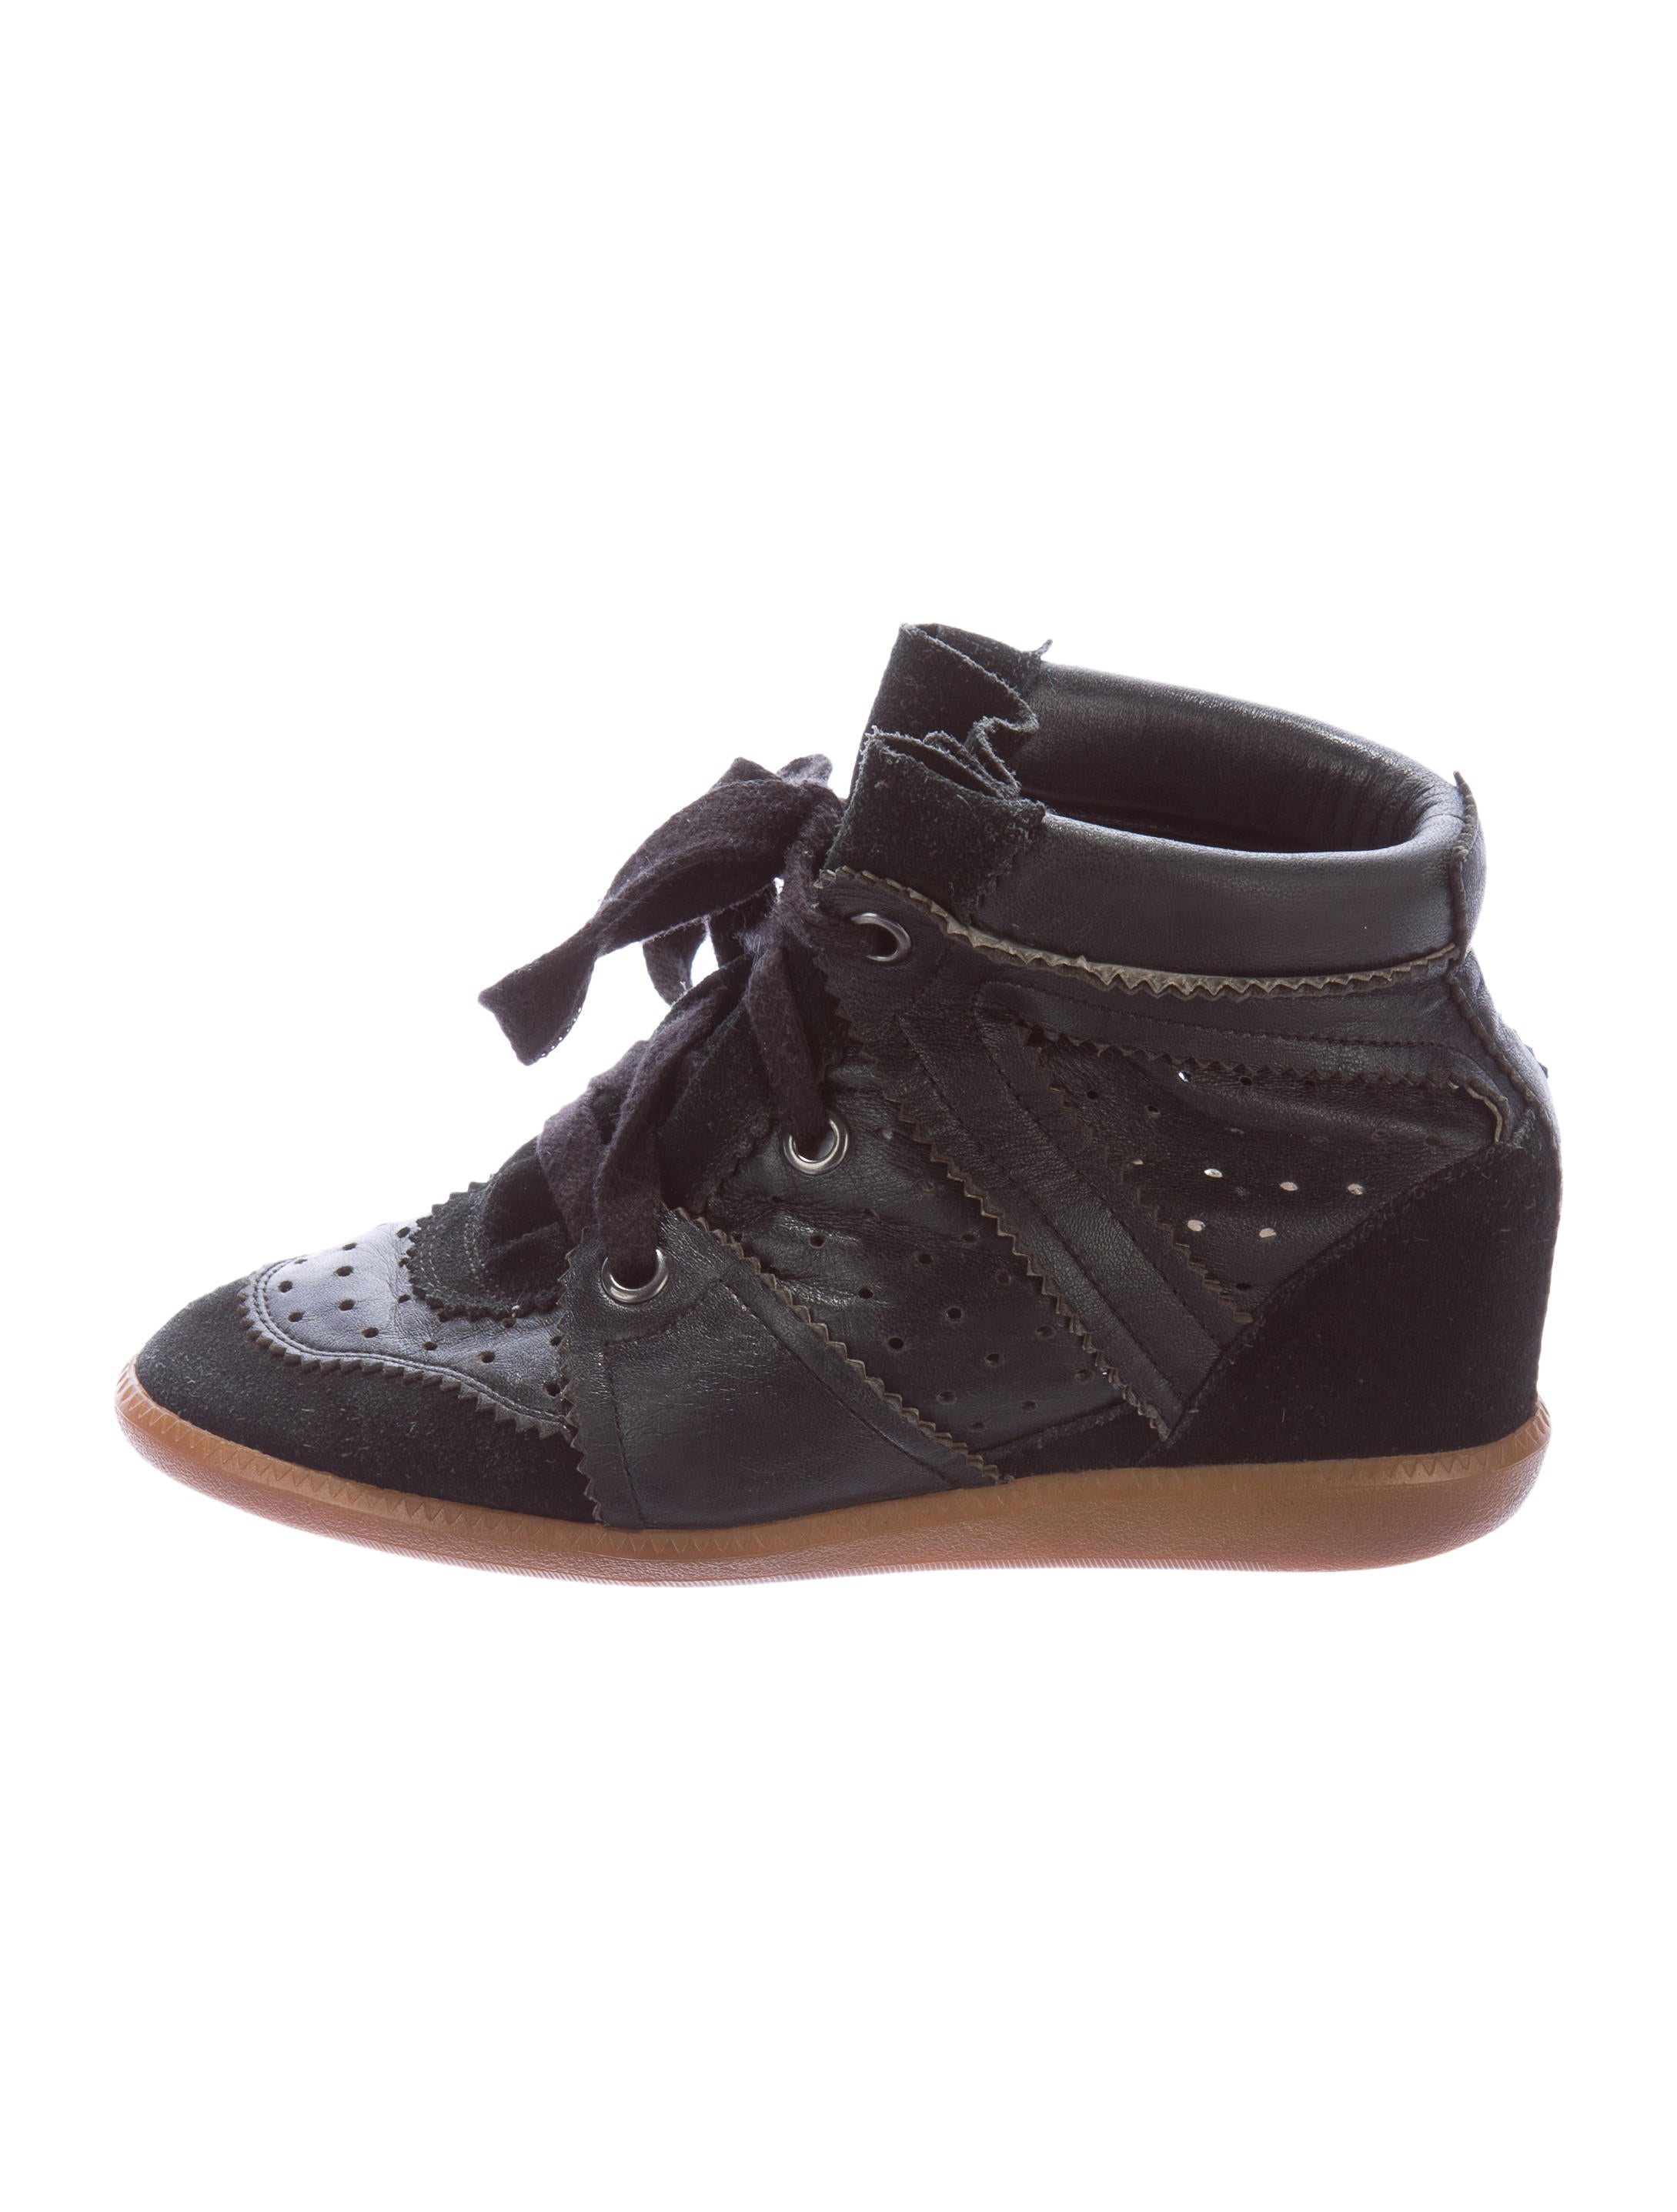 isabel marant bobby wedge sneakers shoes isa35186. Black Bedroom Furniture Sets. Home Design Ideas